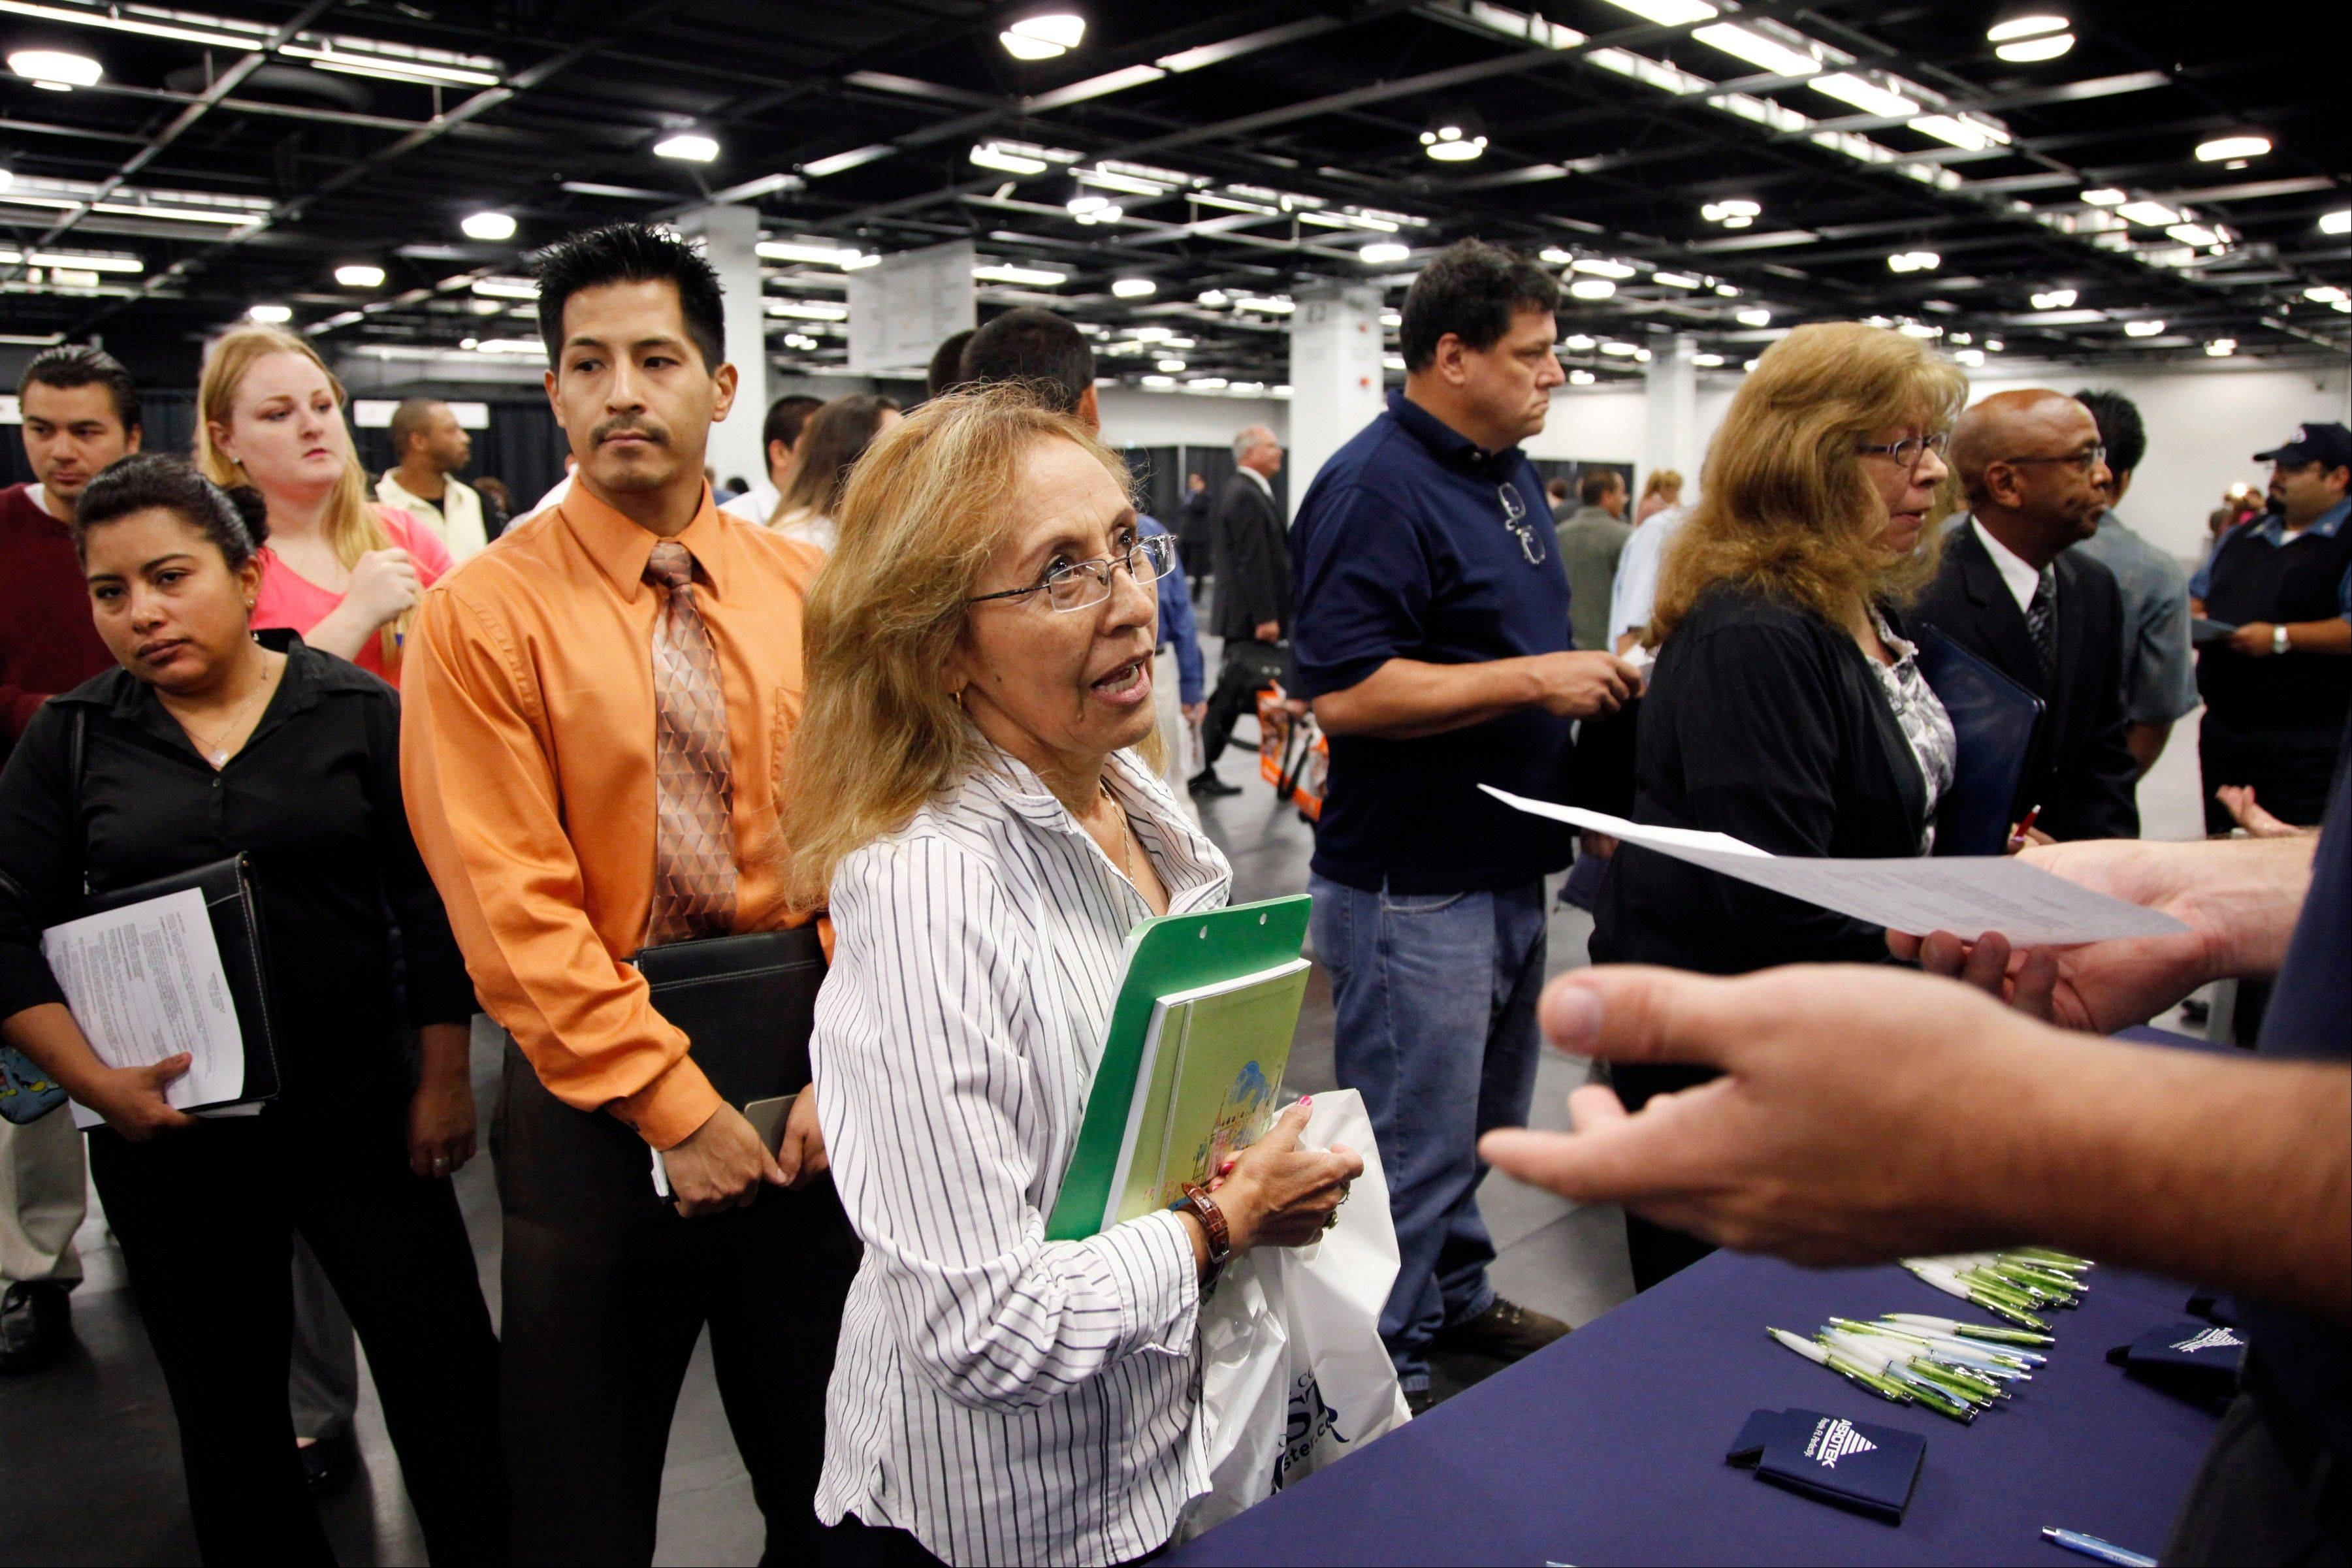 Maria Wilt, center, talks to a recruiter at a job fair expo in Anaheim, Calif.